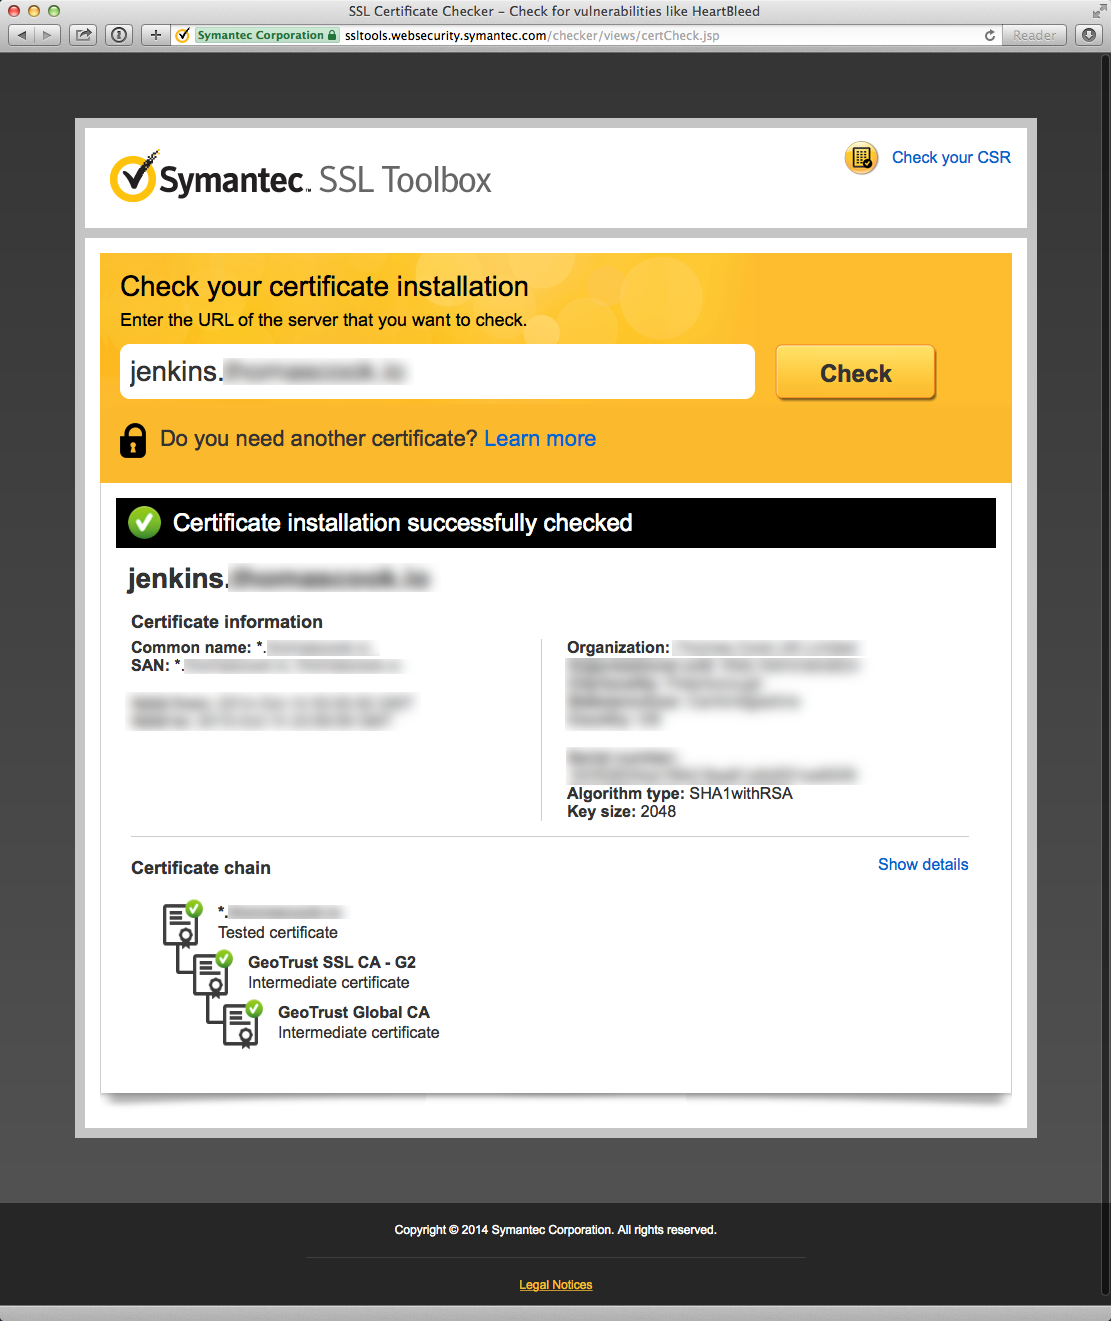 Screenshot of a succesful certificate validation in the Symantec SSL Toolbox